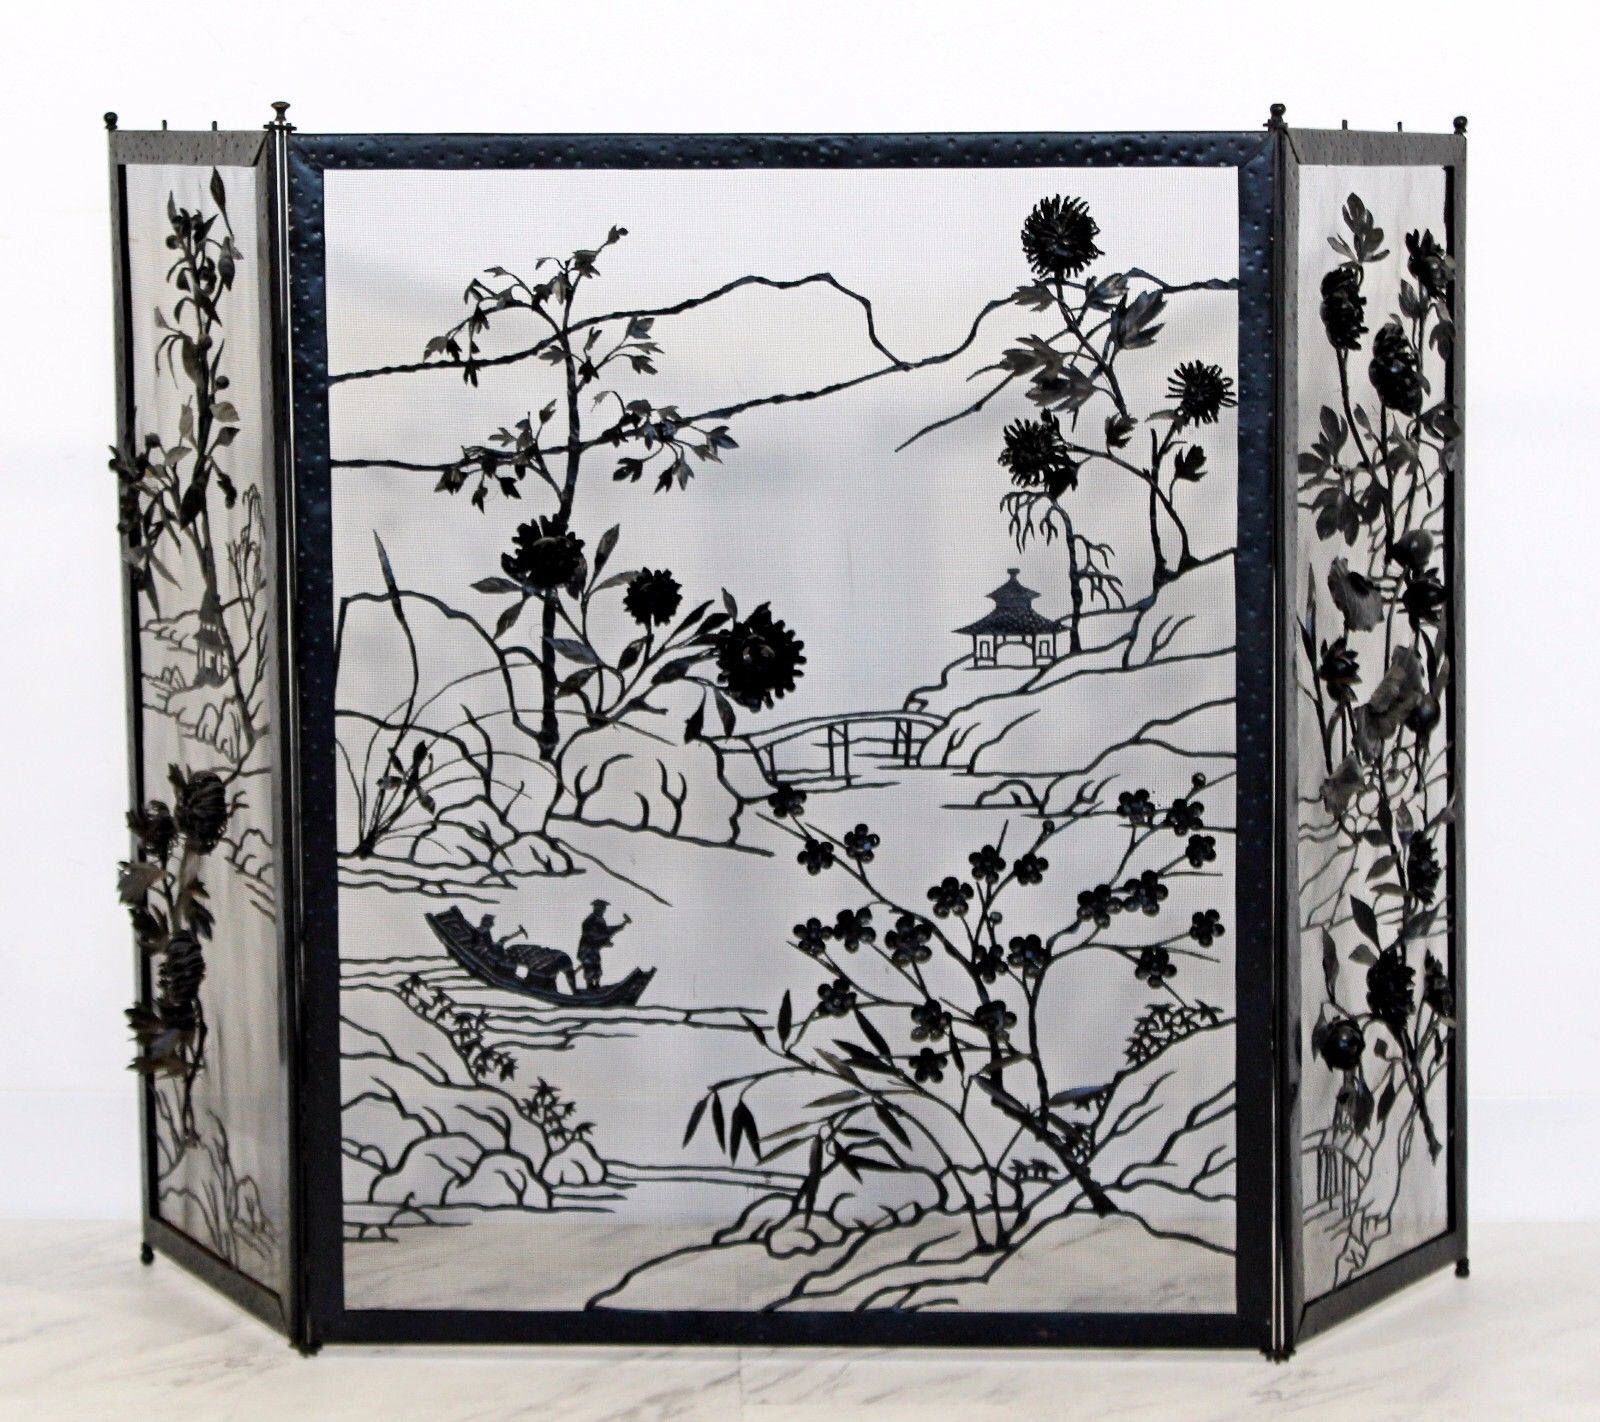 Art Deco Asian Black Painted Steel & Brass Fireplace Screen 1940s Floral by LeShoppe05 on Etsy https://www.etsy.com/listing/561201979/art-deco-asian-black-painted-steel-brass